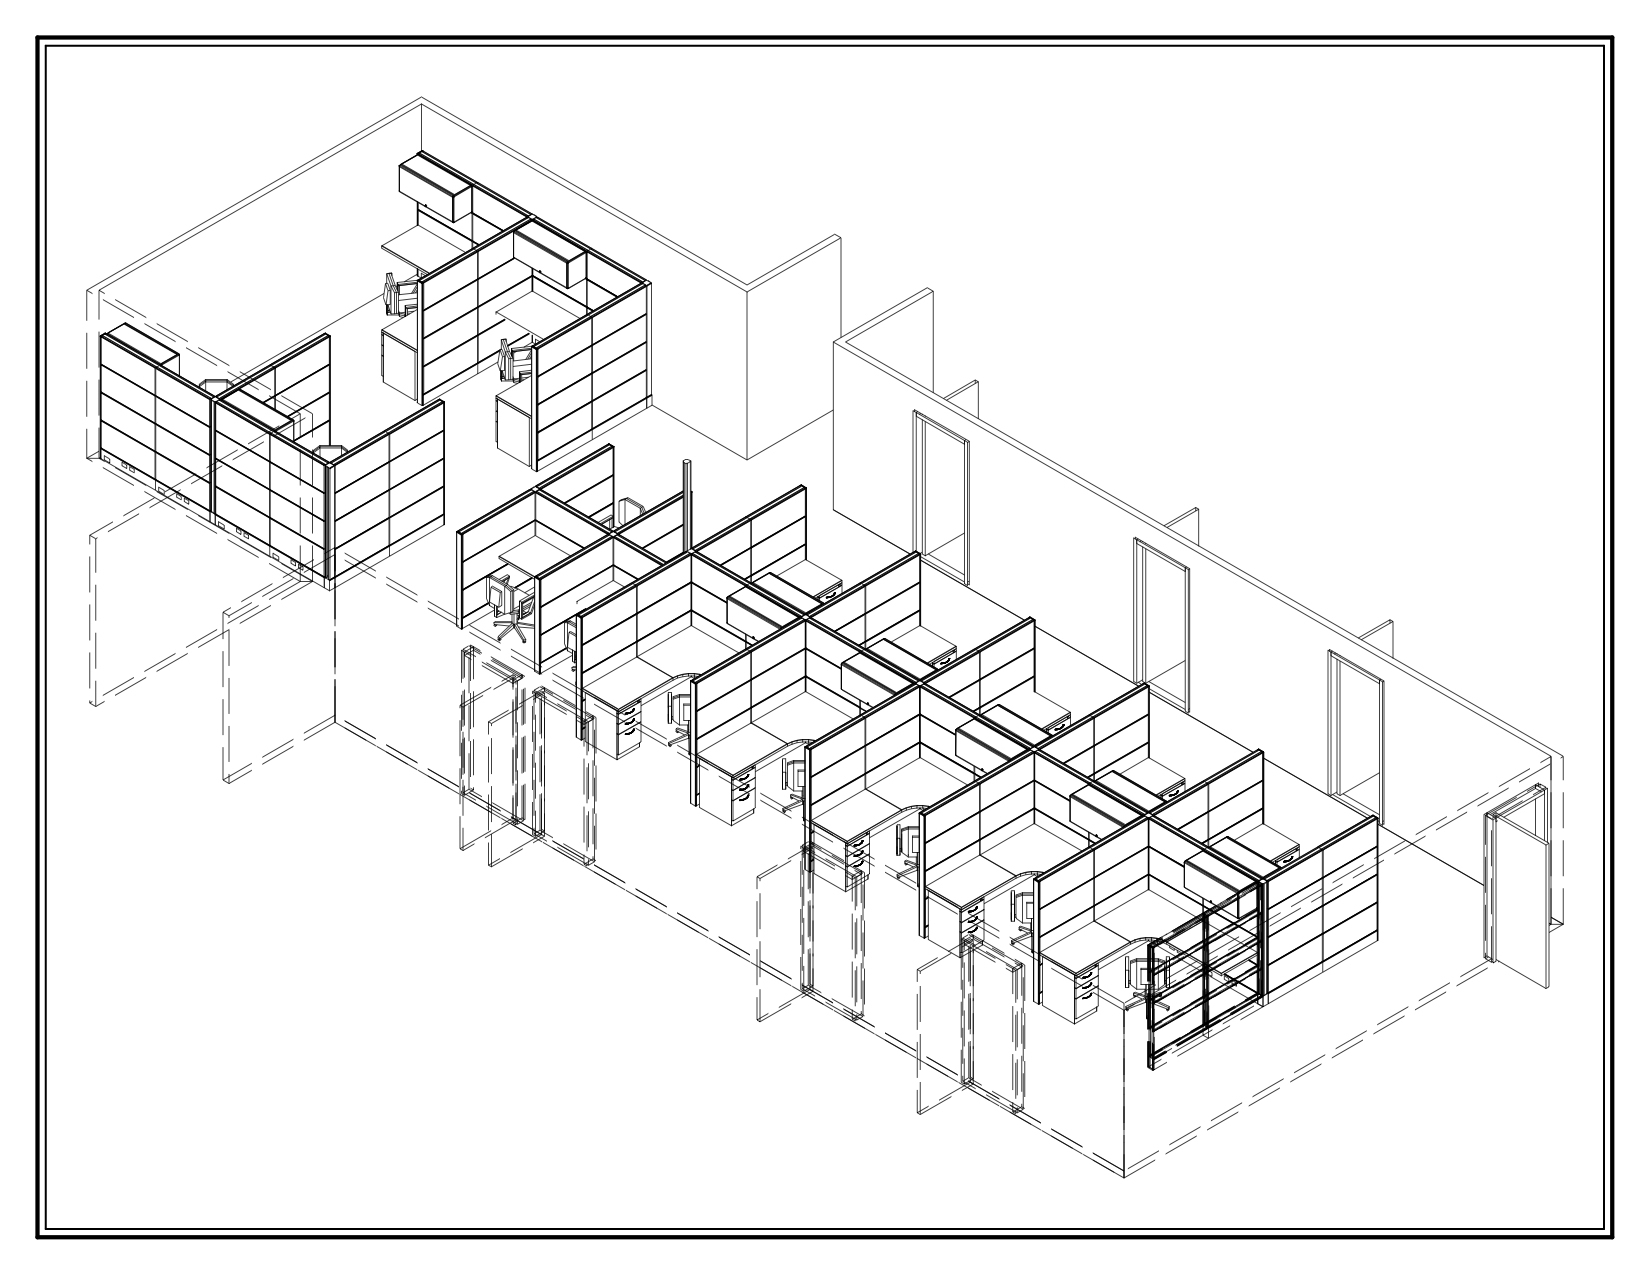 Office Furniture Design & Space Planning